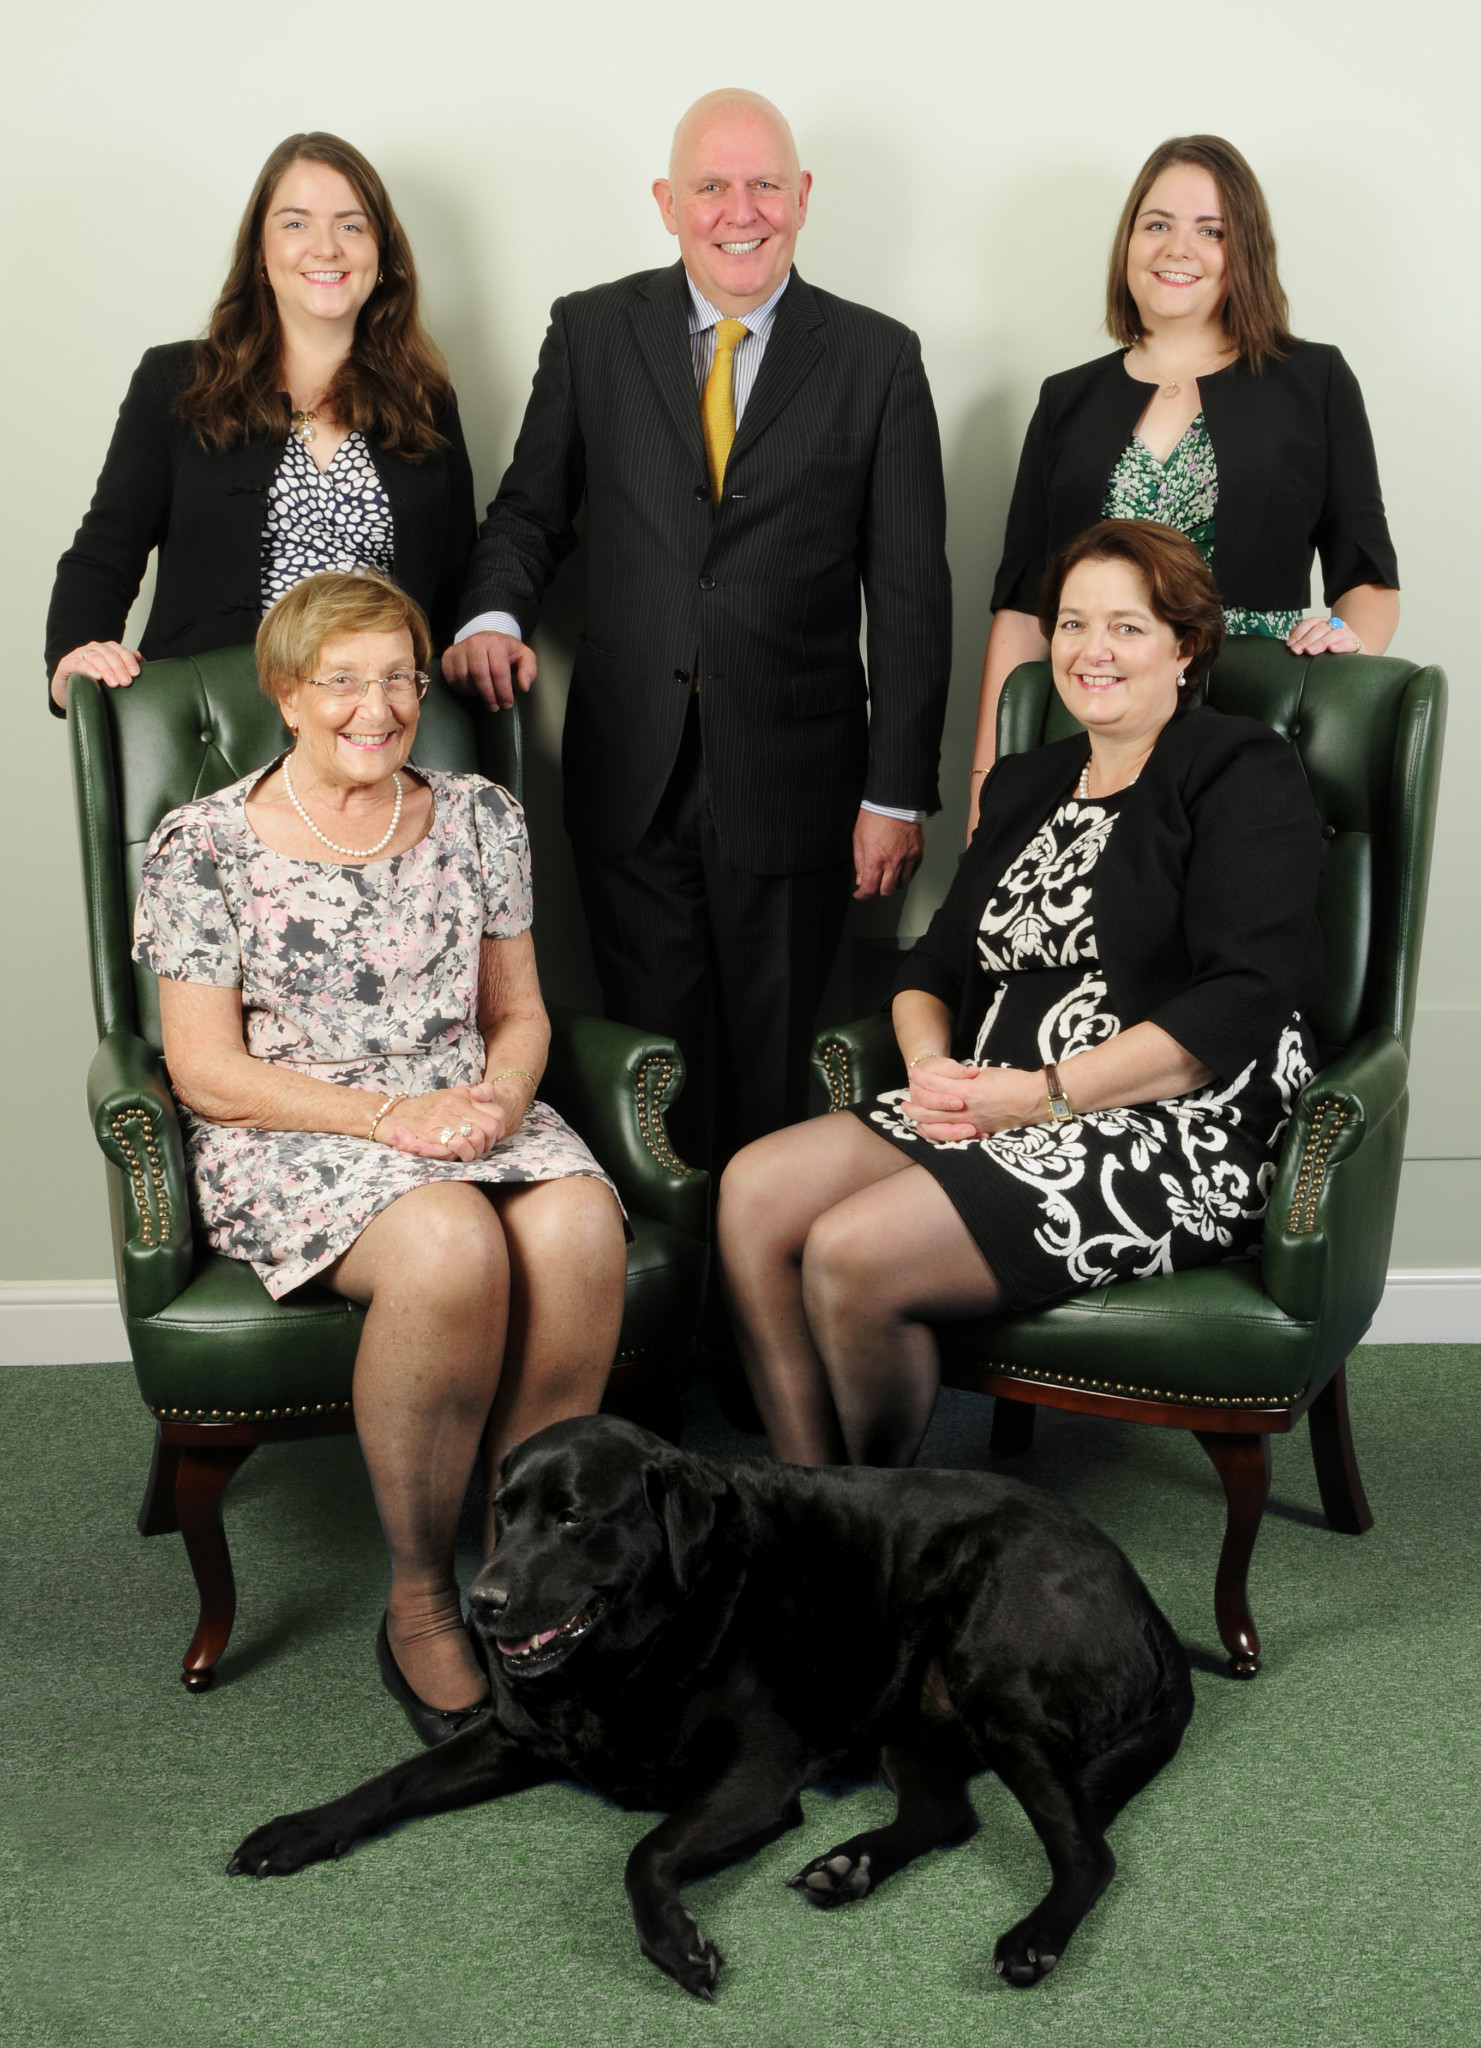 Fellows today: Nicola, Stephen, Alexandra and Jayne Whittaker, Muriel Fellows with Maddie the Fellows dog.